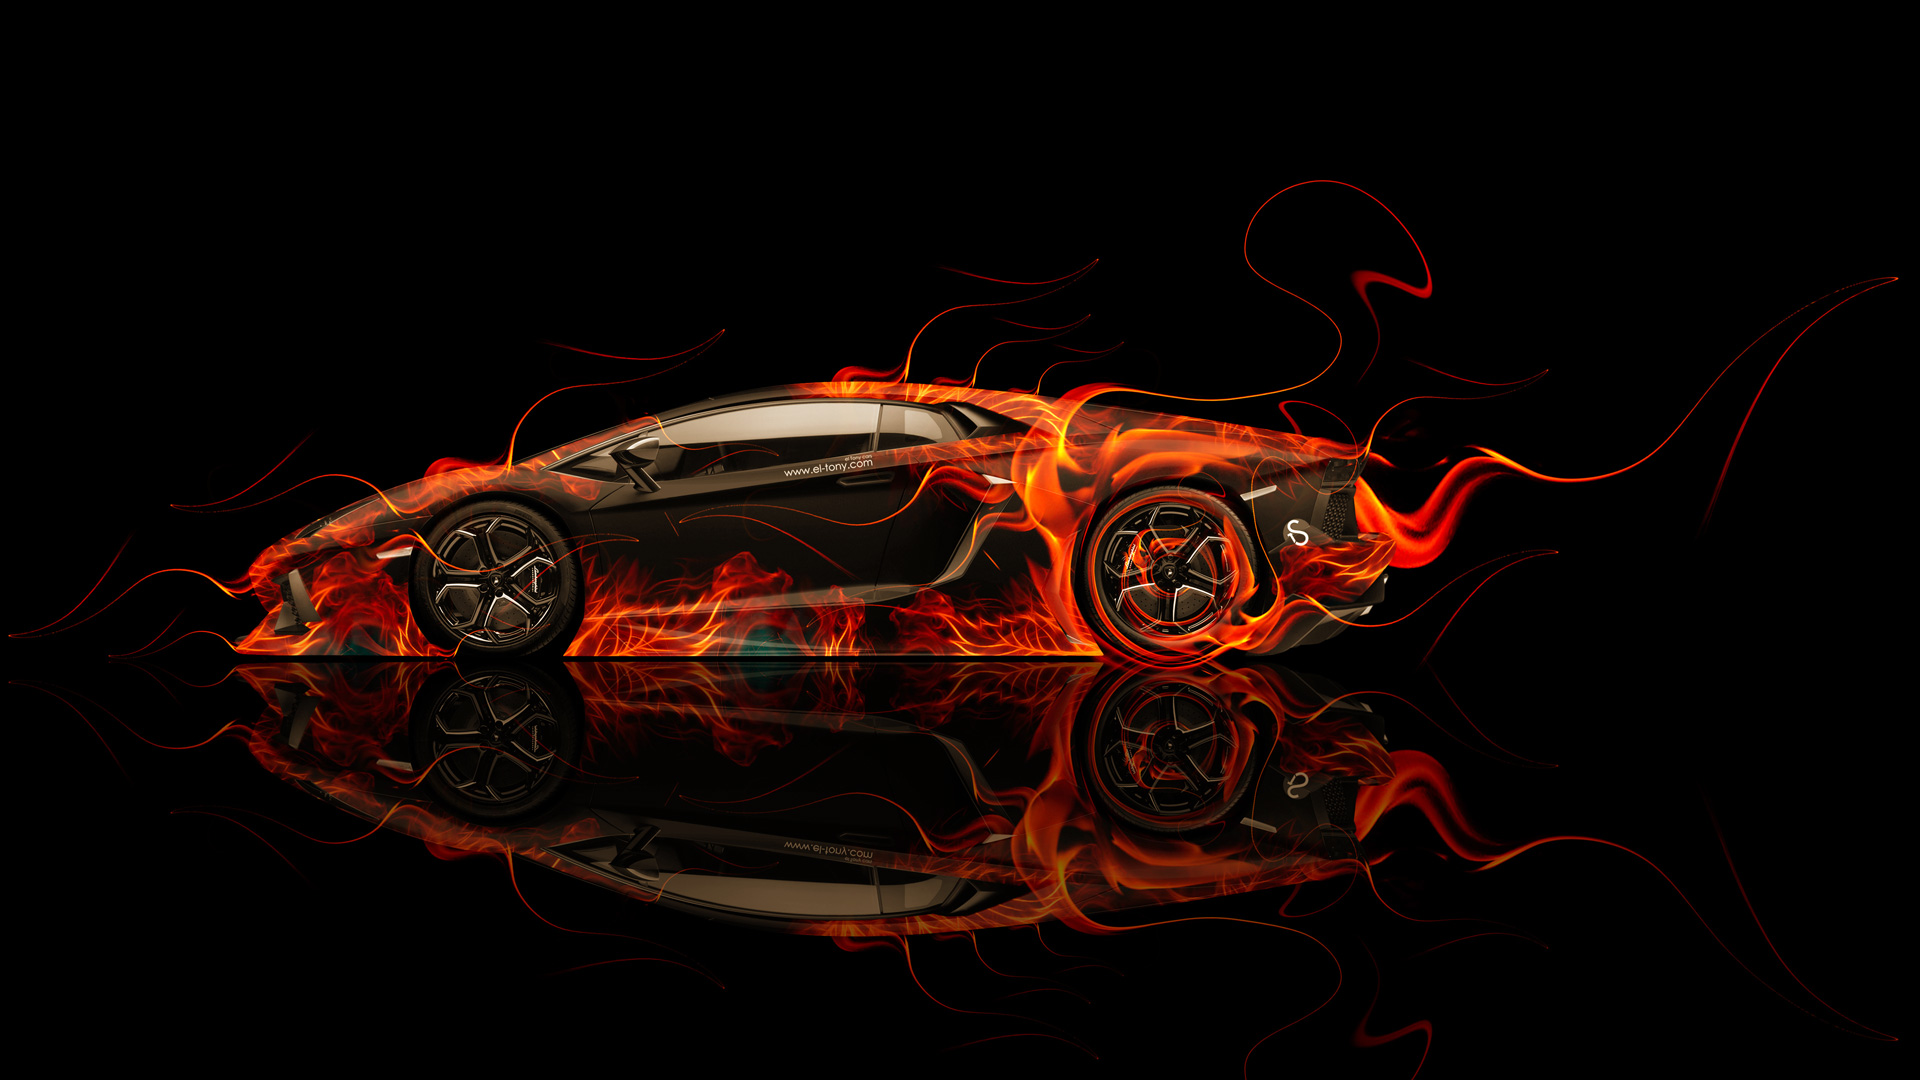 Lamborghini Aventador Side Fire Abstract Car 2014 HD